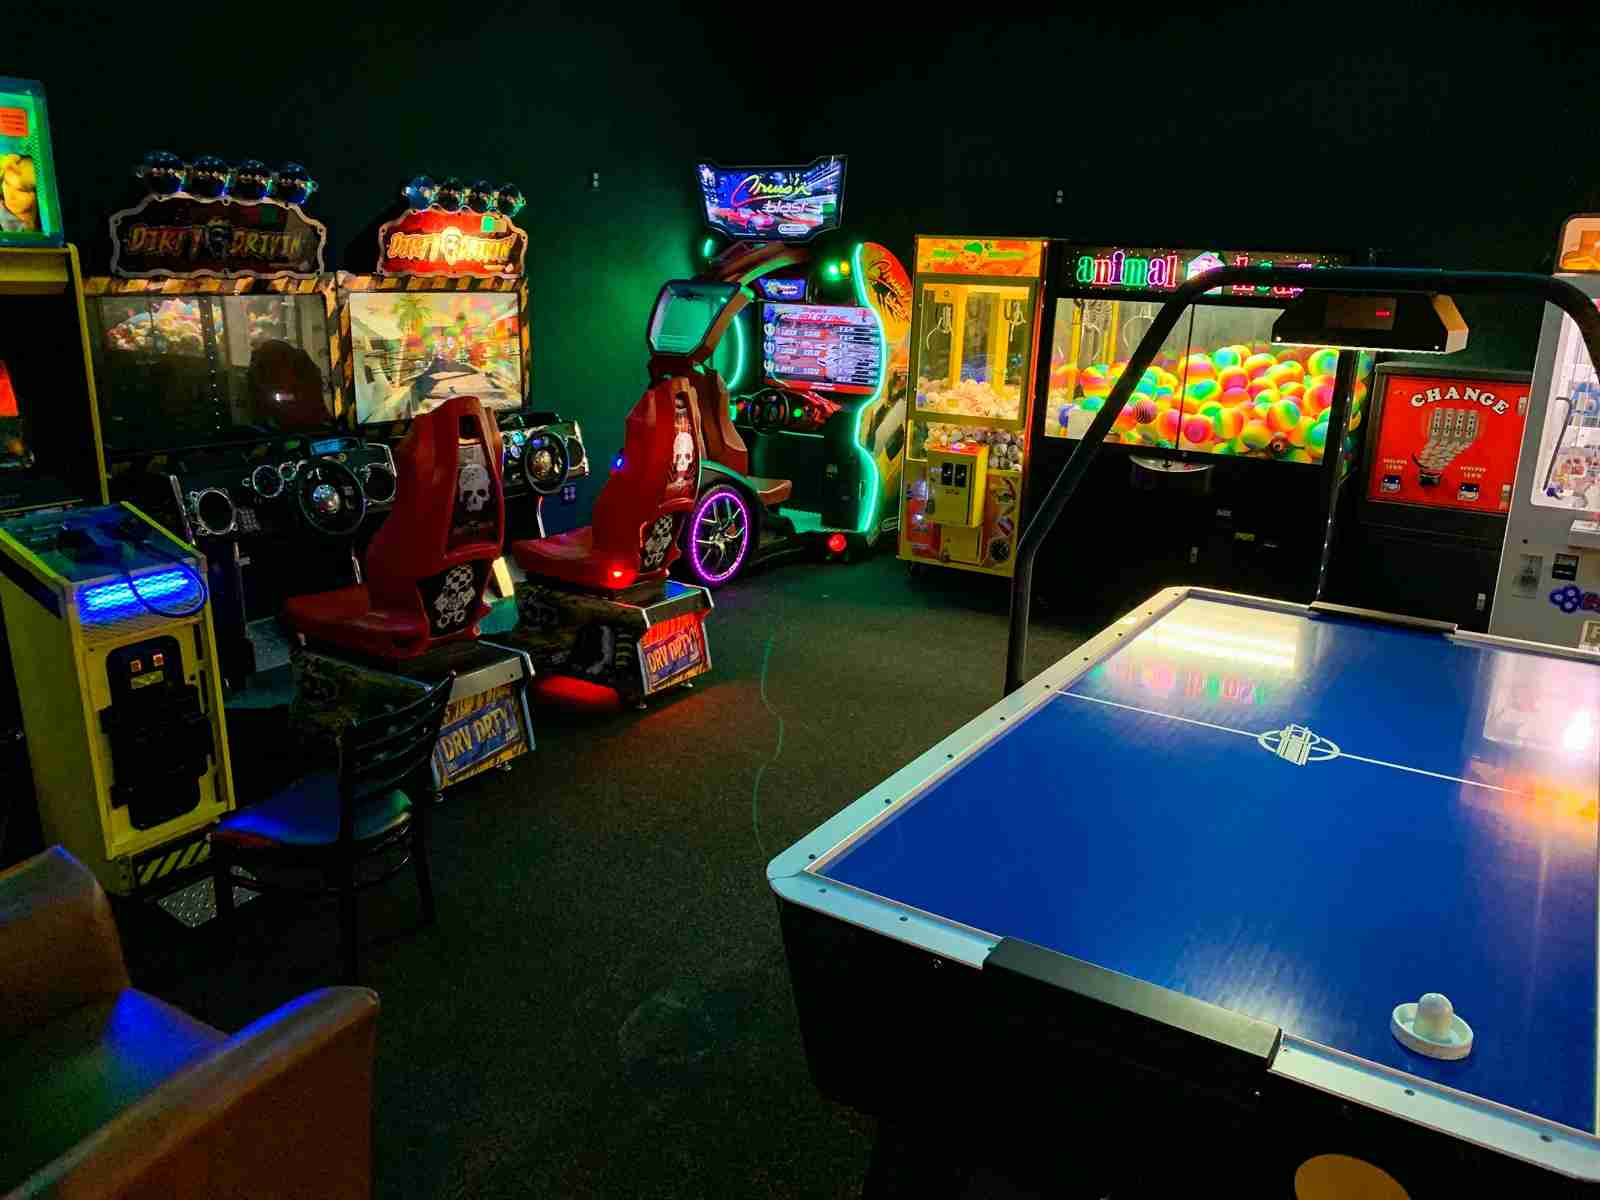 Fairfield Anaheim Disneyland Game Room